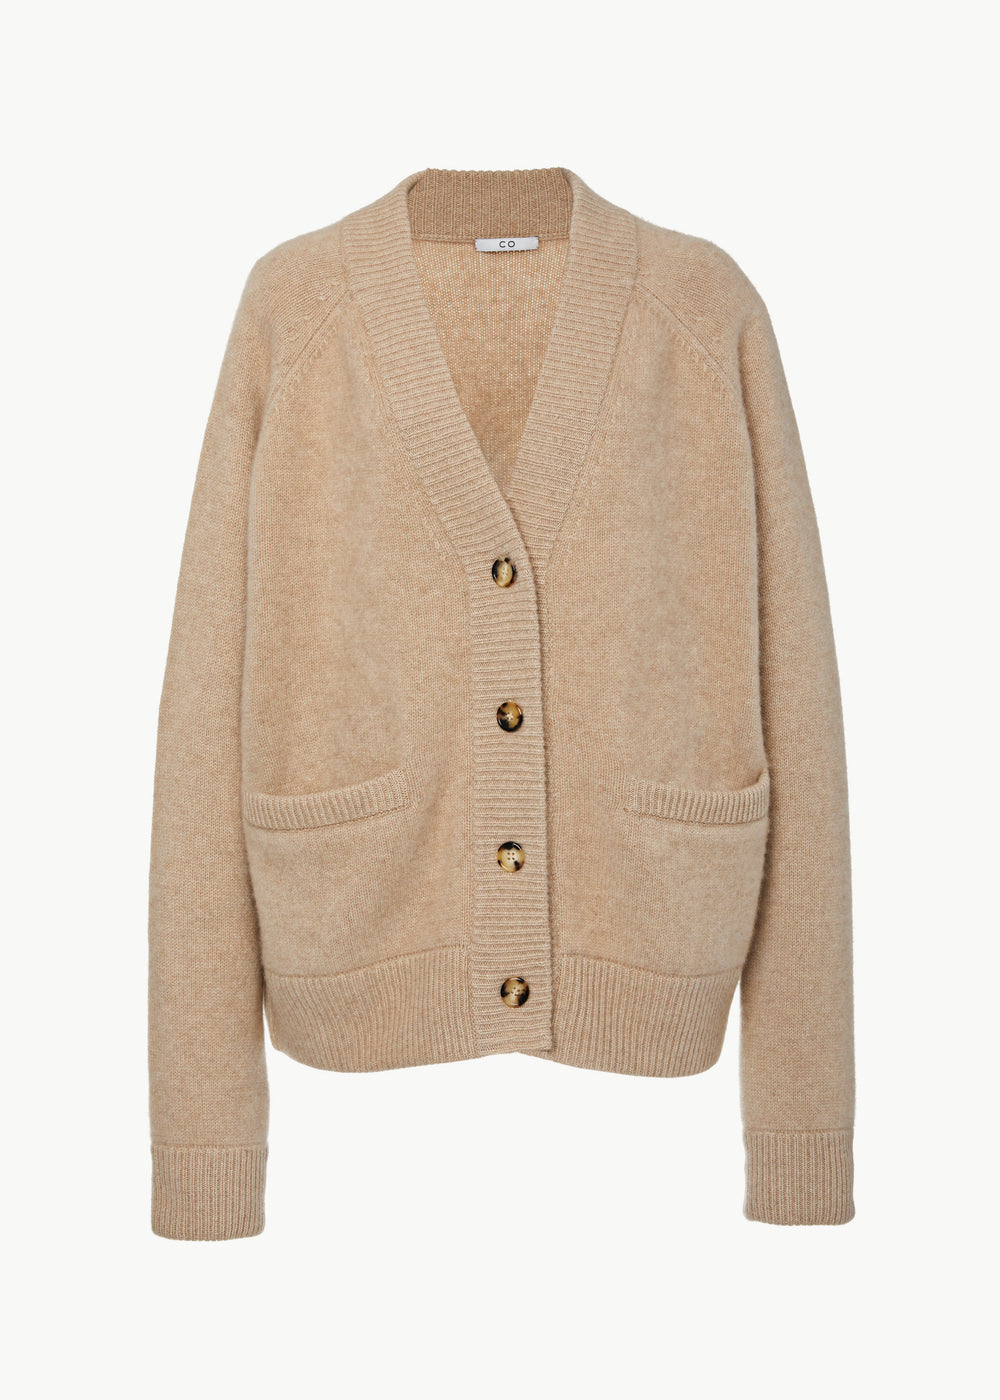 Oversized Cardigan in Cashmere - Sand - CO